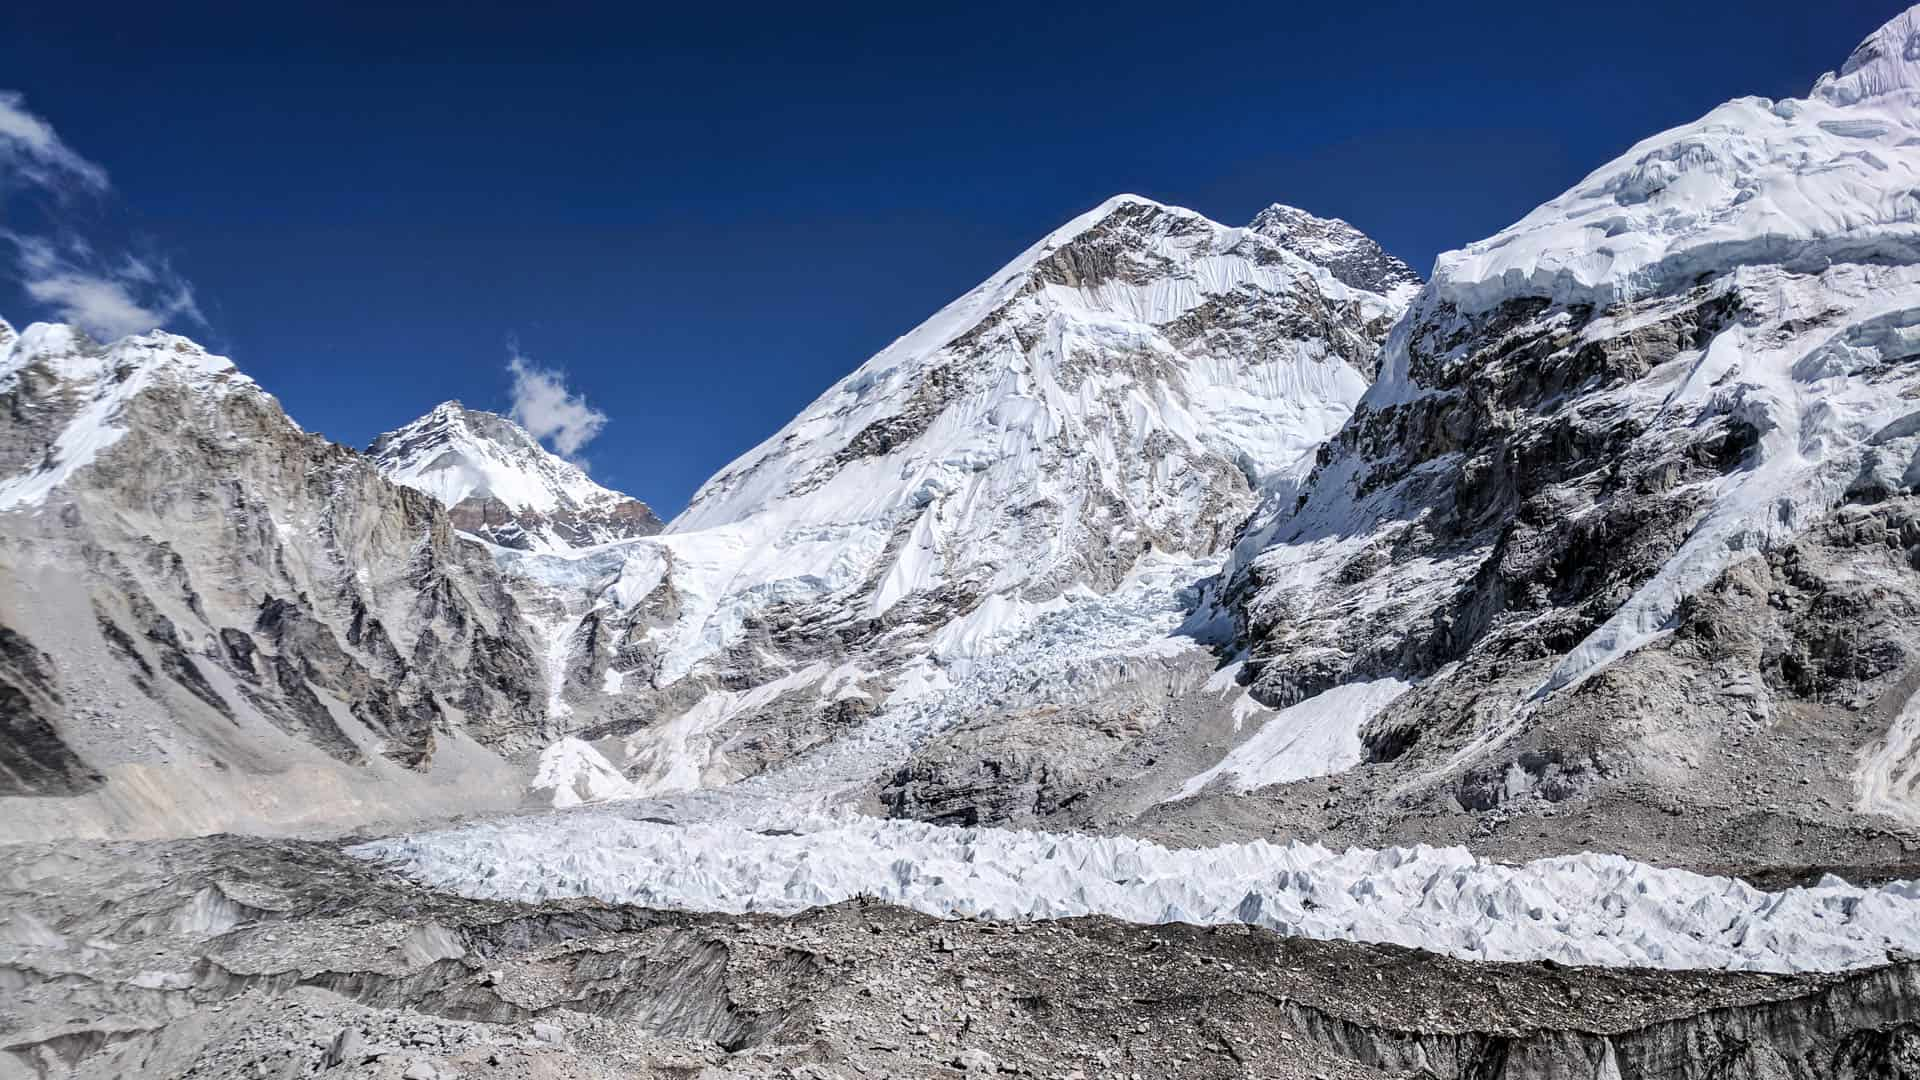 View of the Everest Base Camp